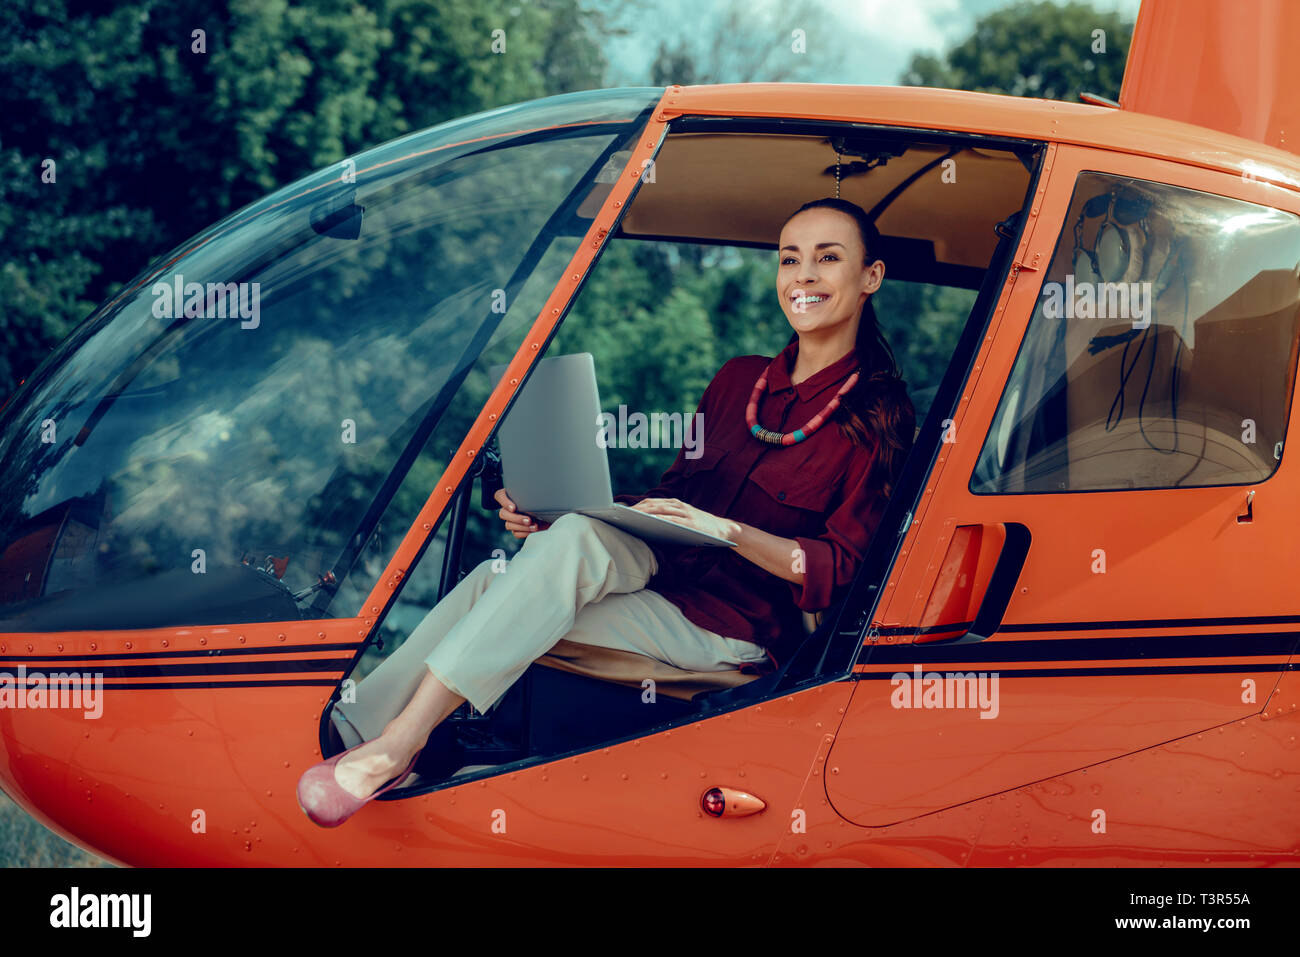 Resolute cheerful lady in light pants and red shirt resting in helicopter - Stock Image